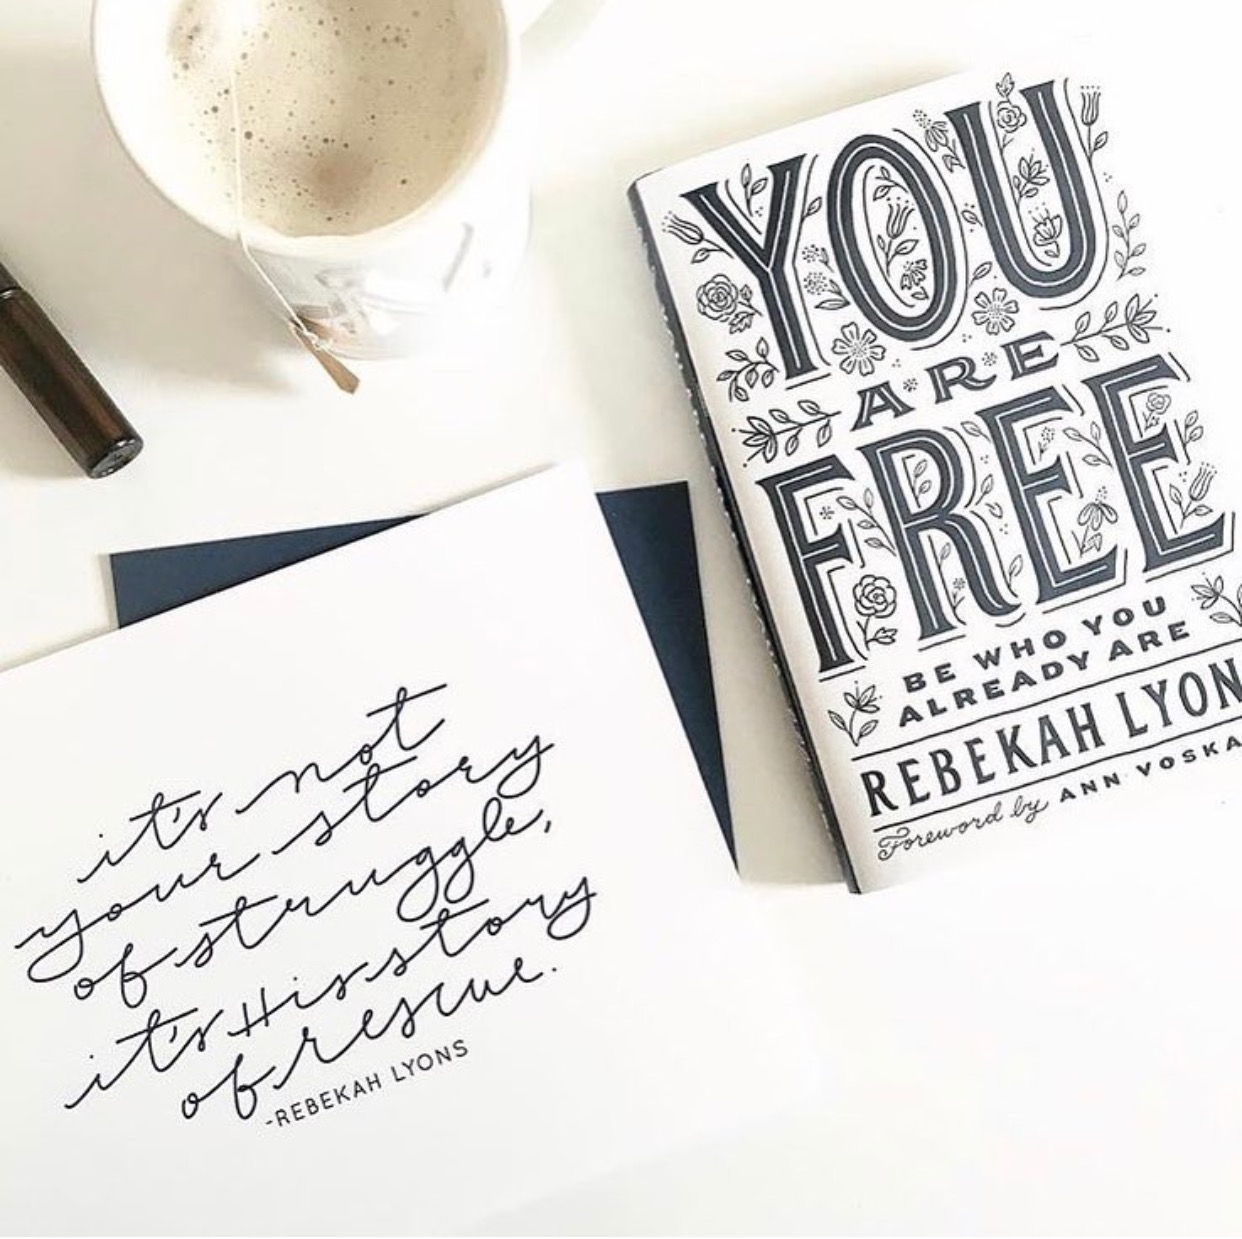 YOU ARE FREE – BE WHO YOU ALREADY ARE